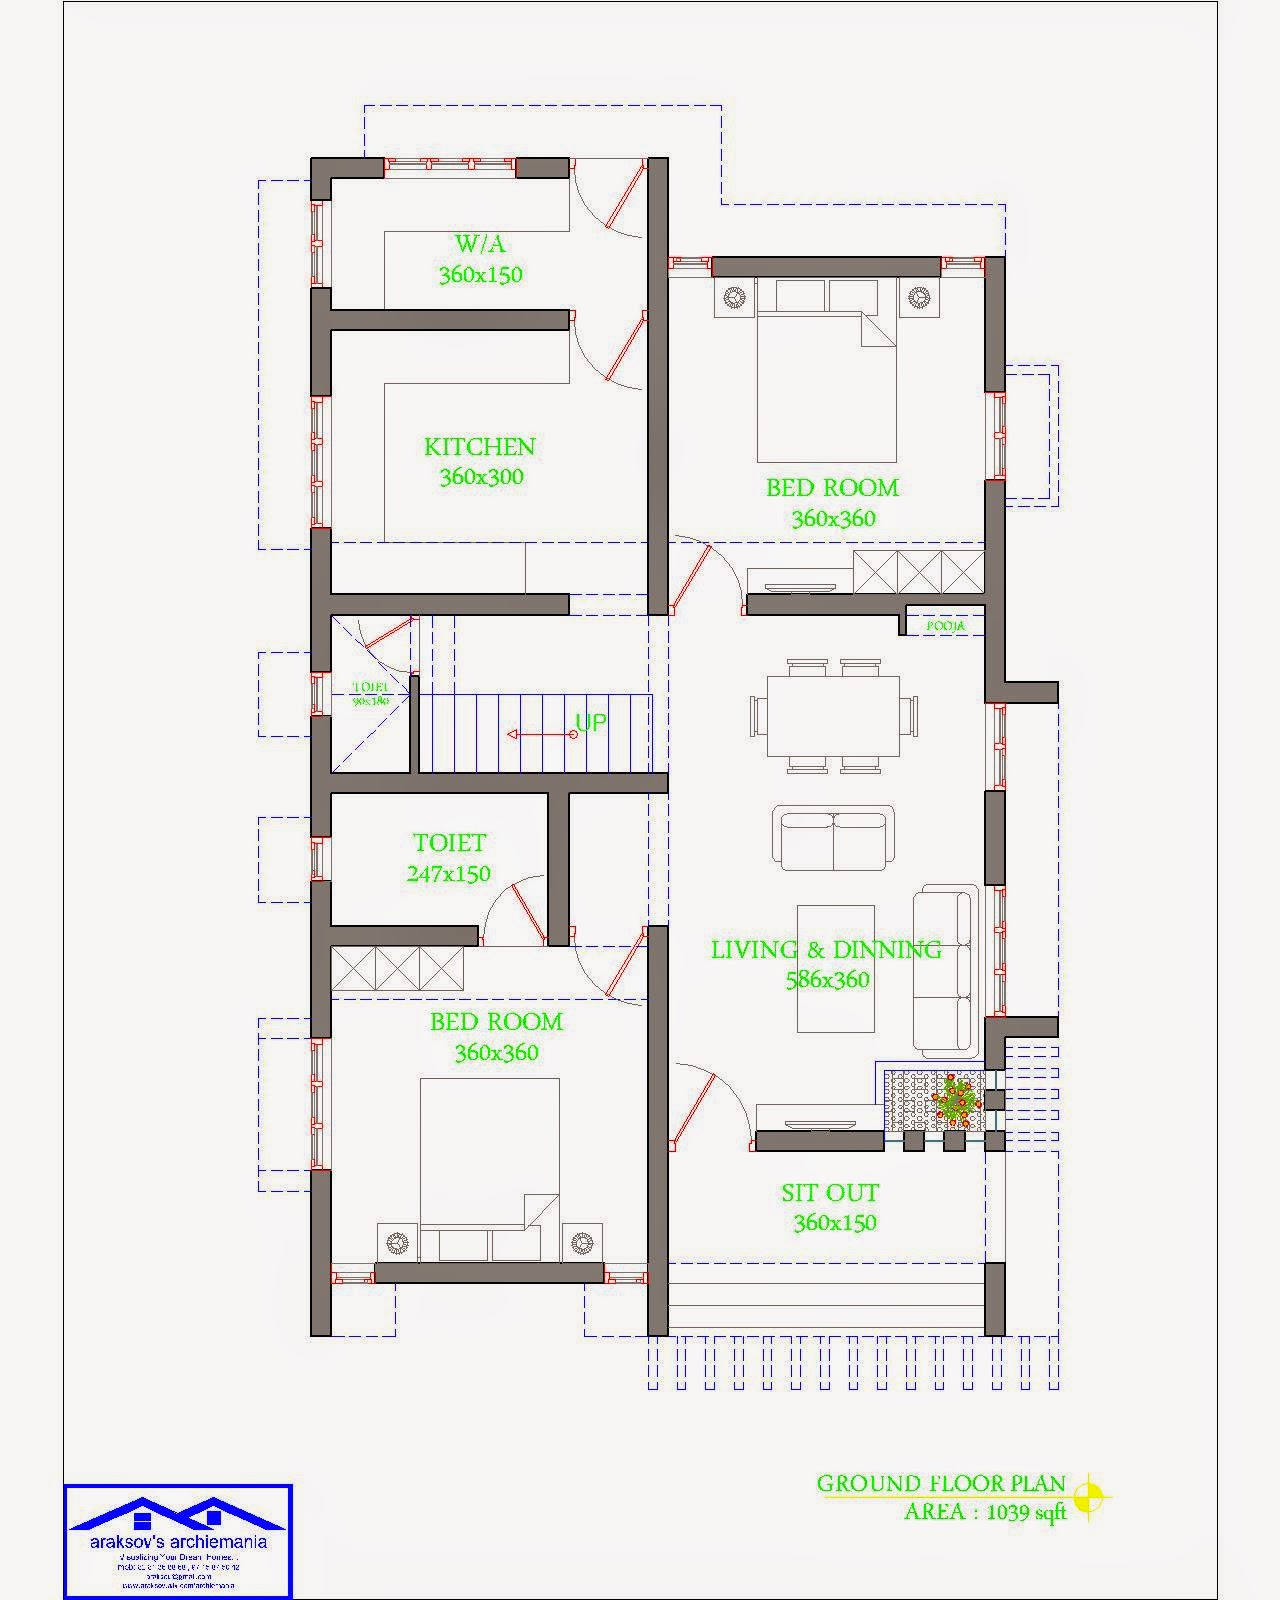 Araksov 39 s archiemania budget home plans elevations for Ground floor vs first floor